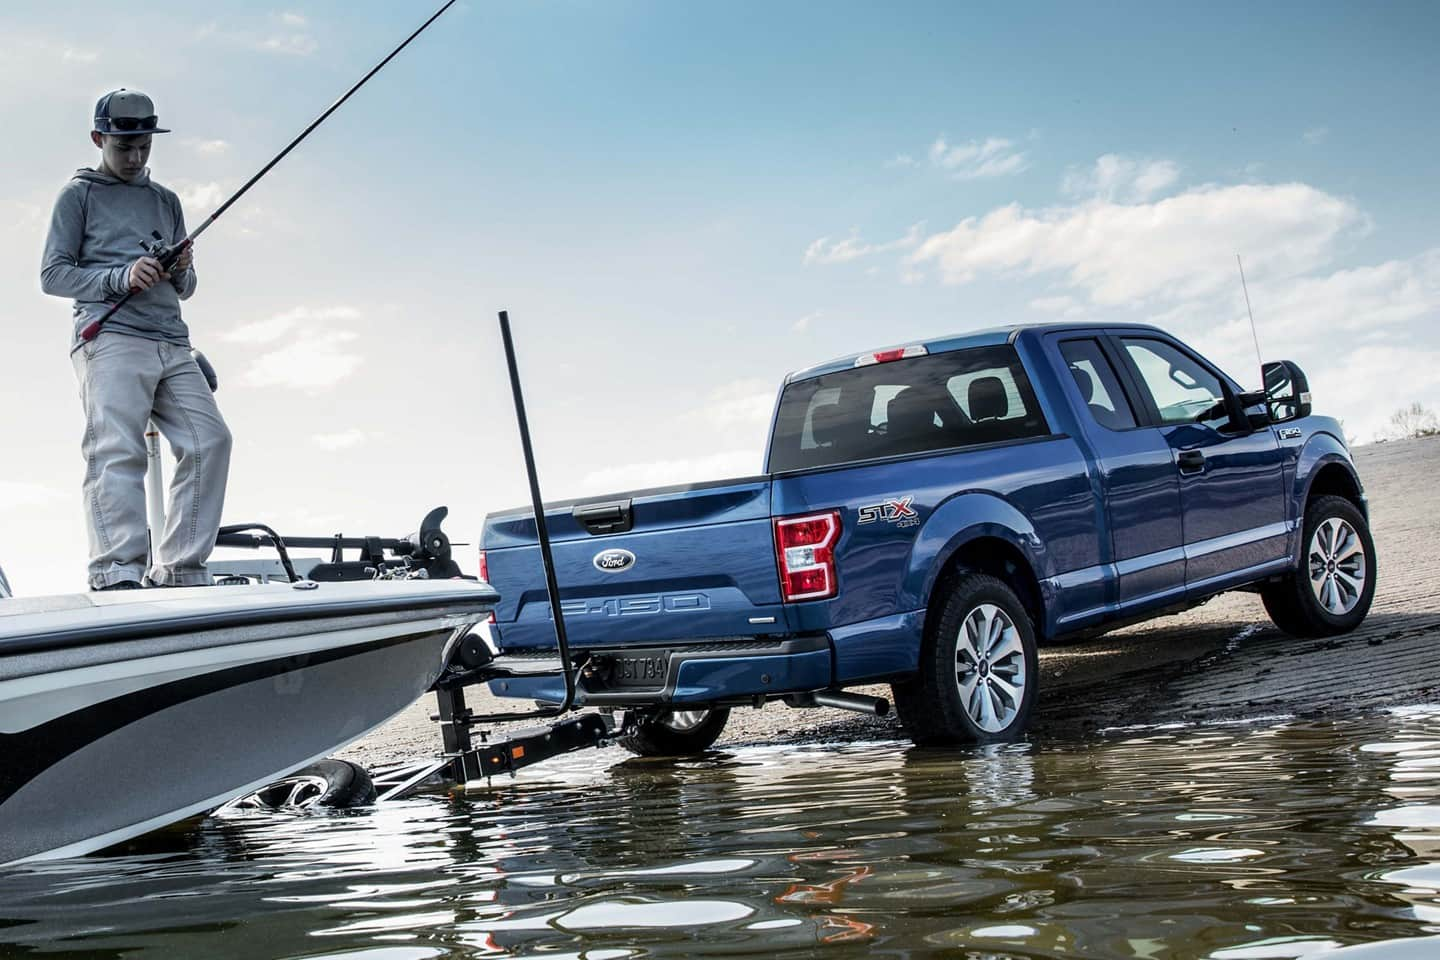 Haul Your Boat With the 2019 Ford F-150!